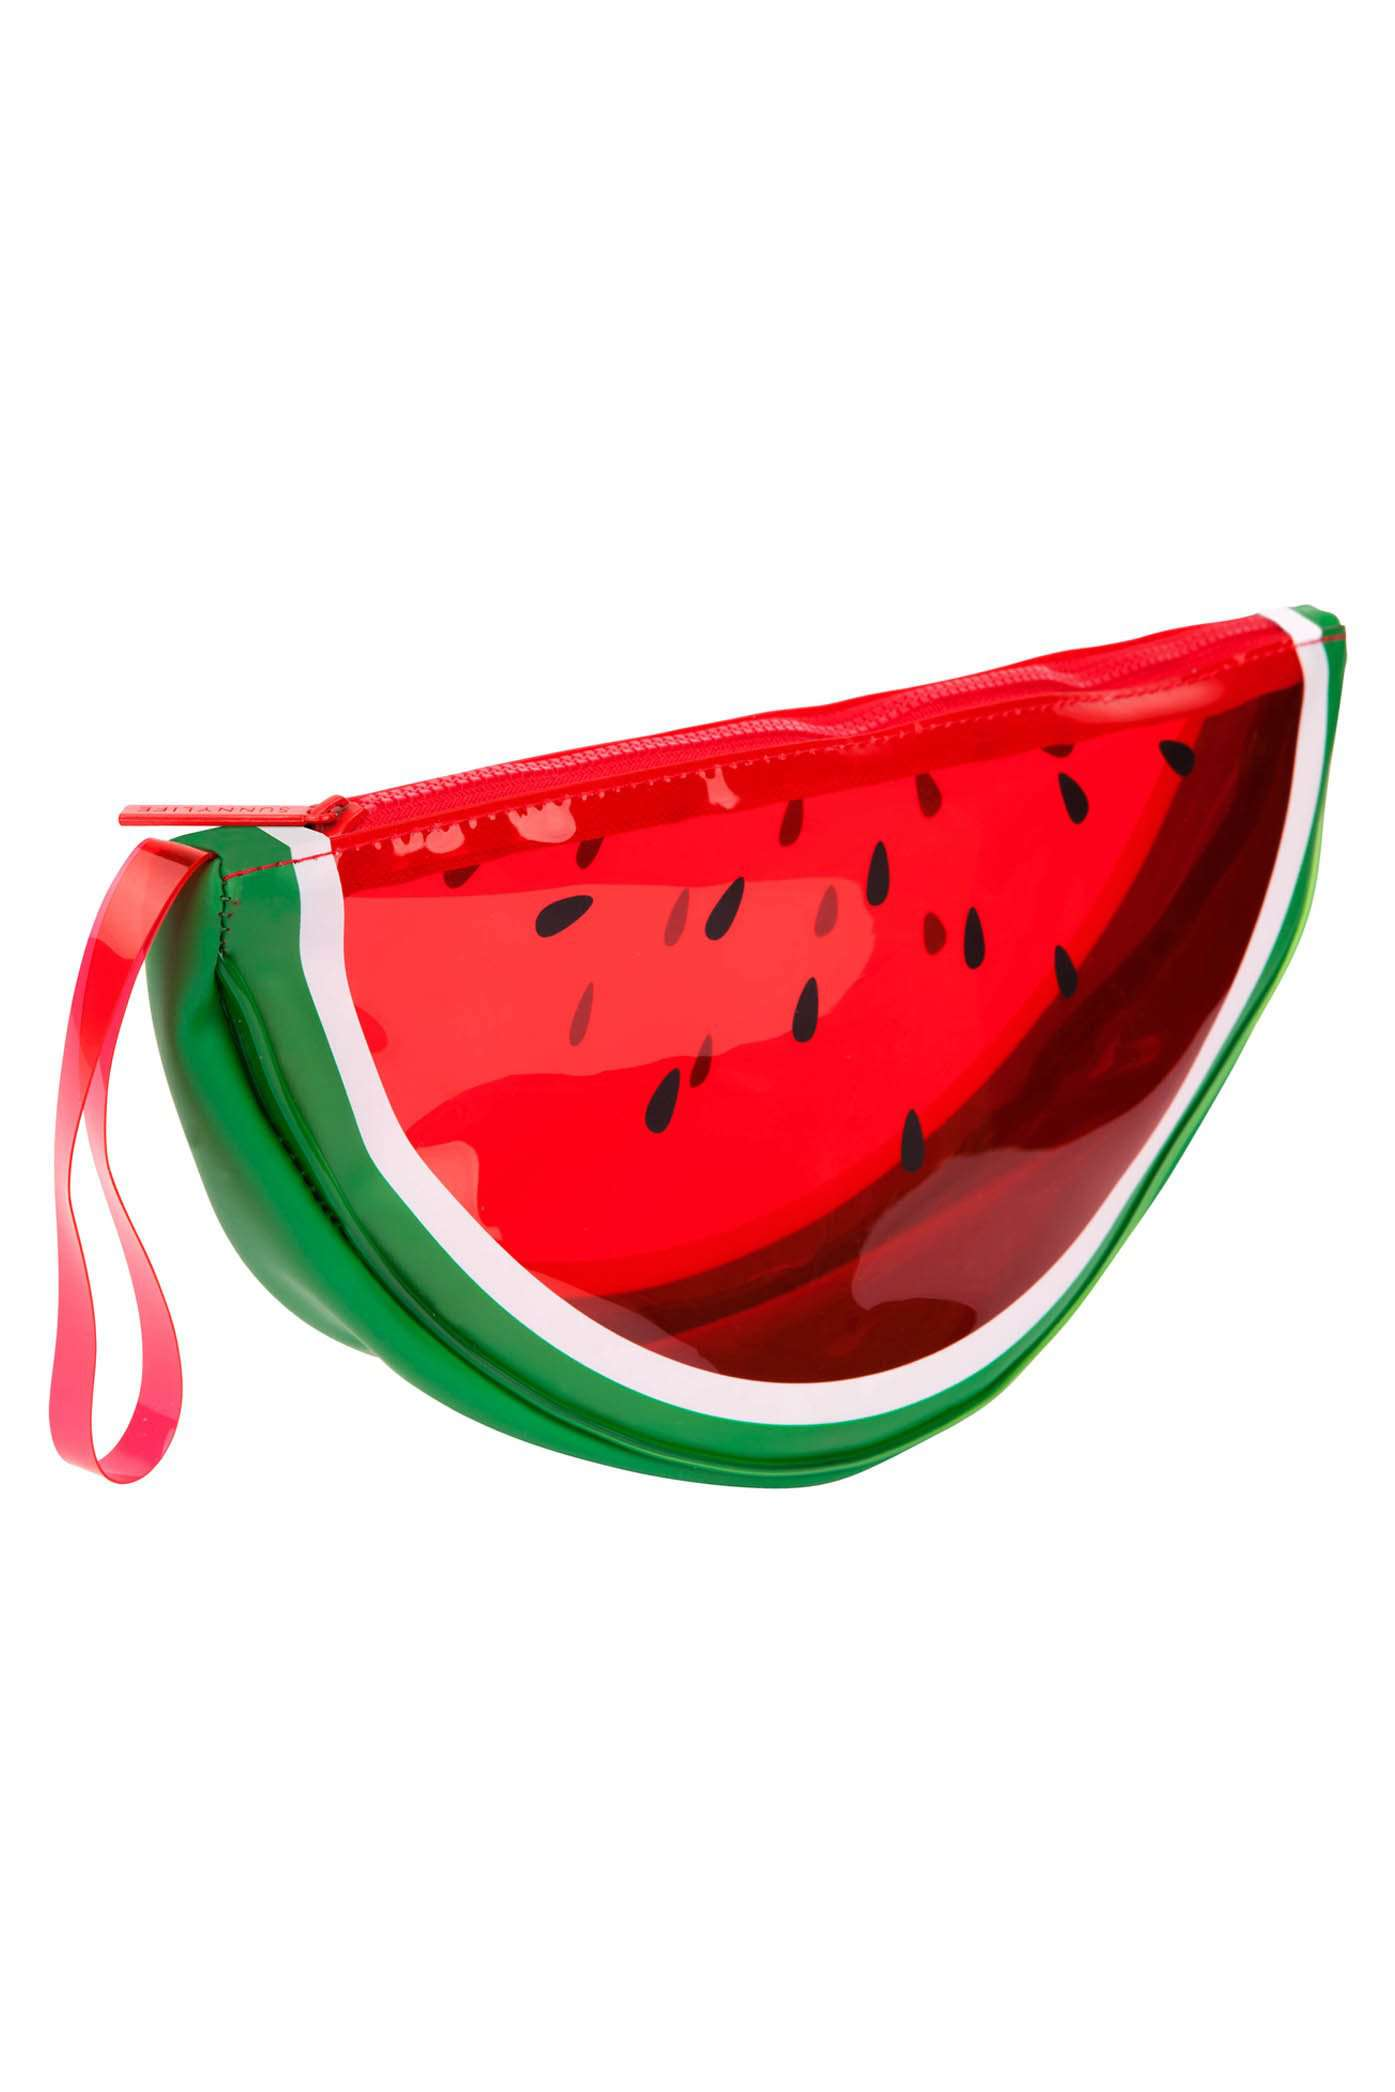 Sunnylife Watermelon Zip Clutch Bag